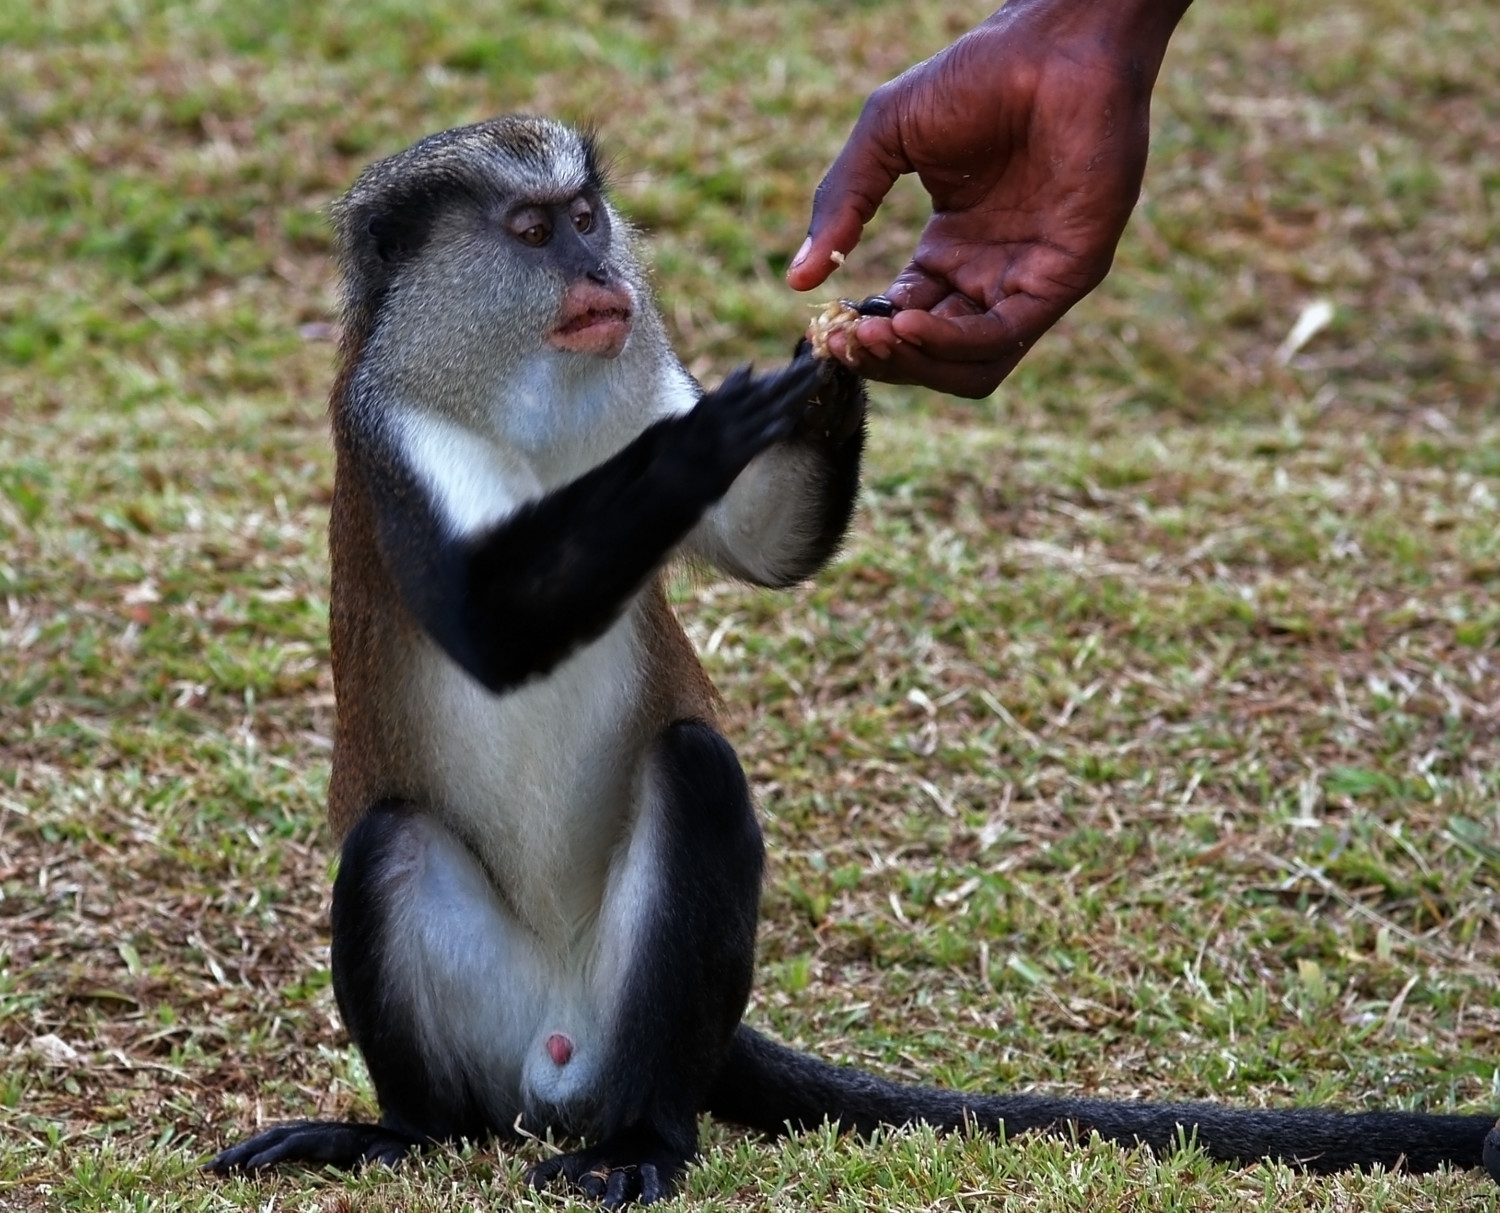 Monkey getting a handout, Grenada, May 2006